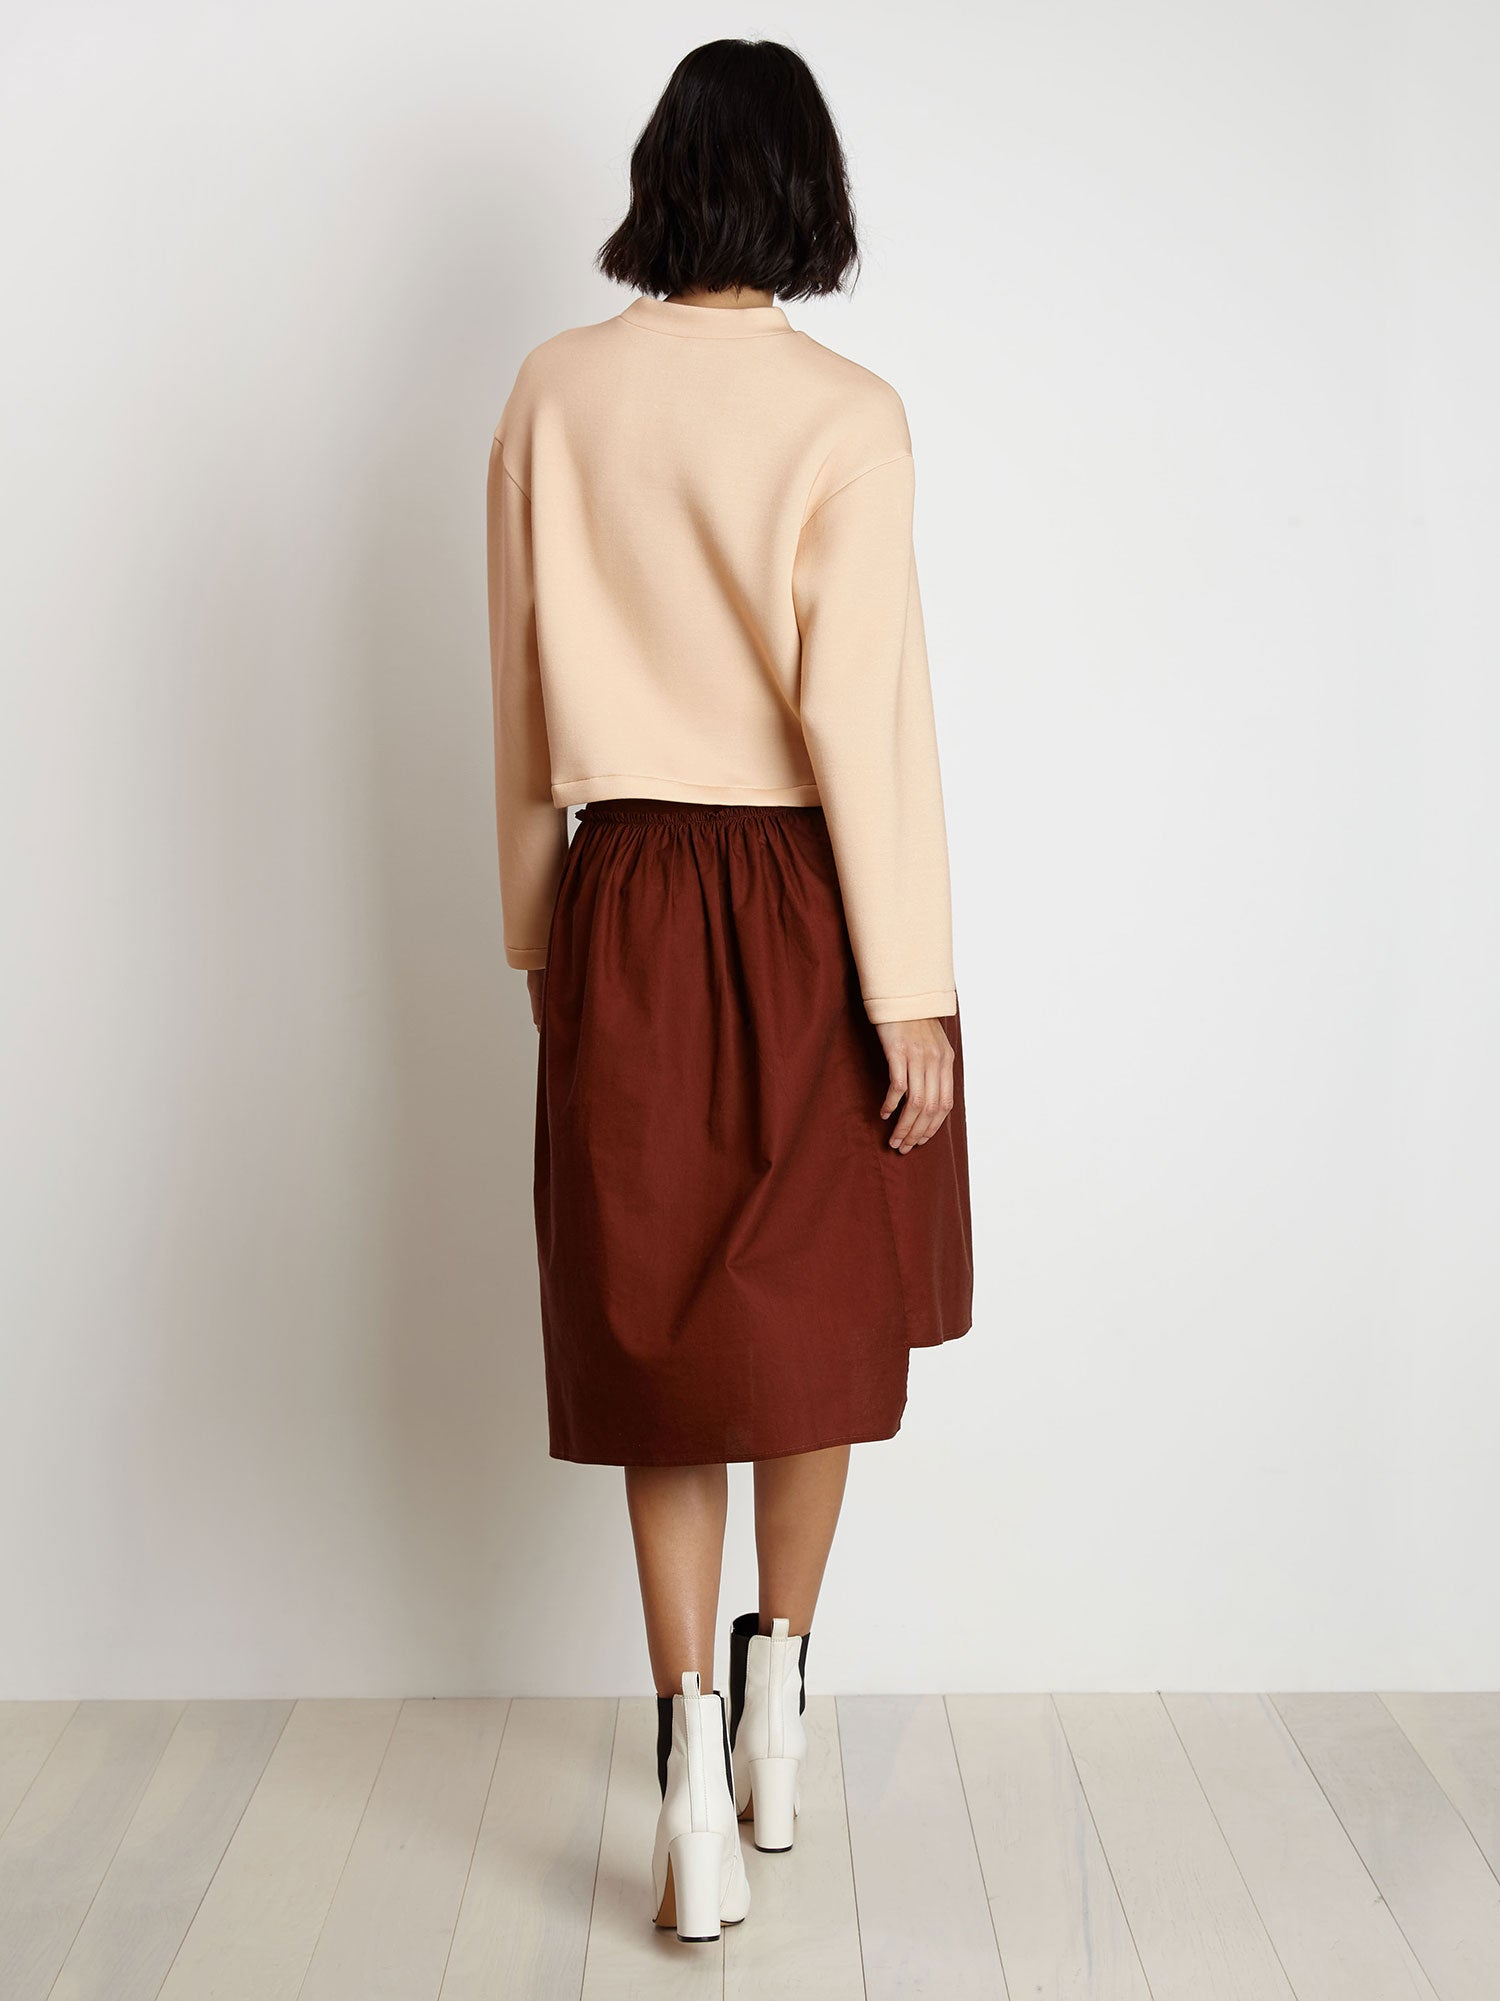 Sweatshirt in Peach is a light-weight crewneck sweatshirt with a boxy fit